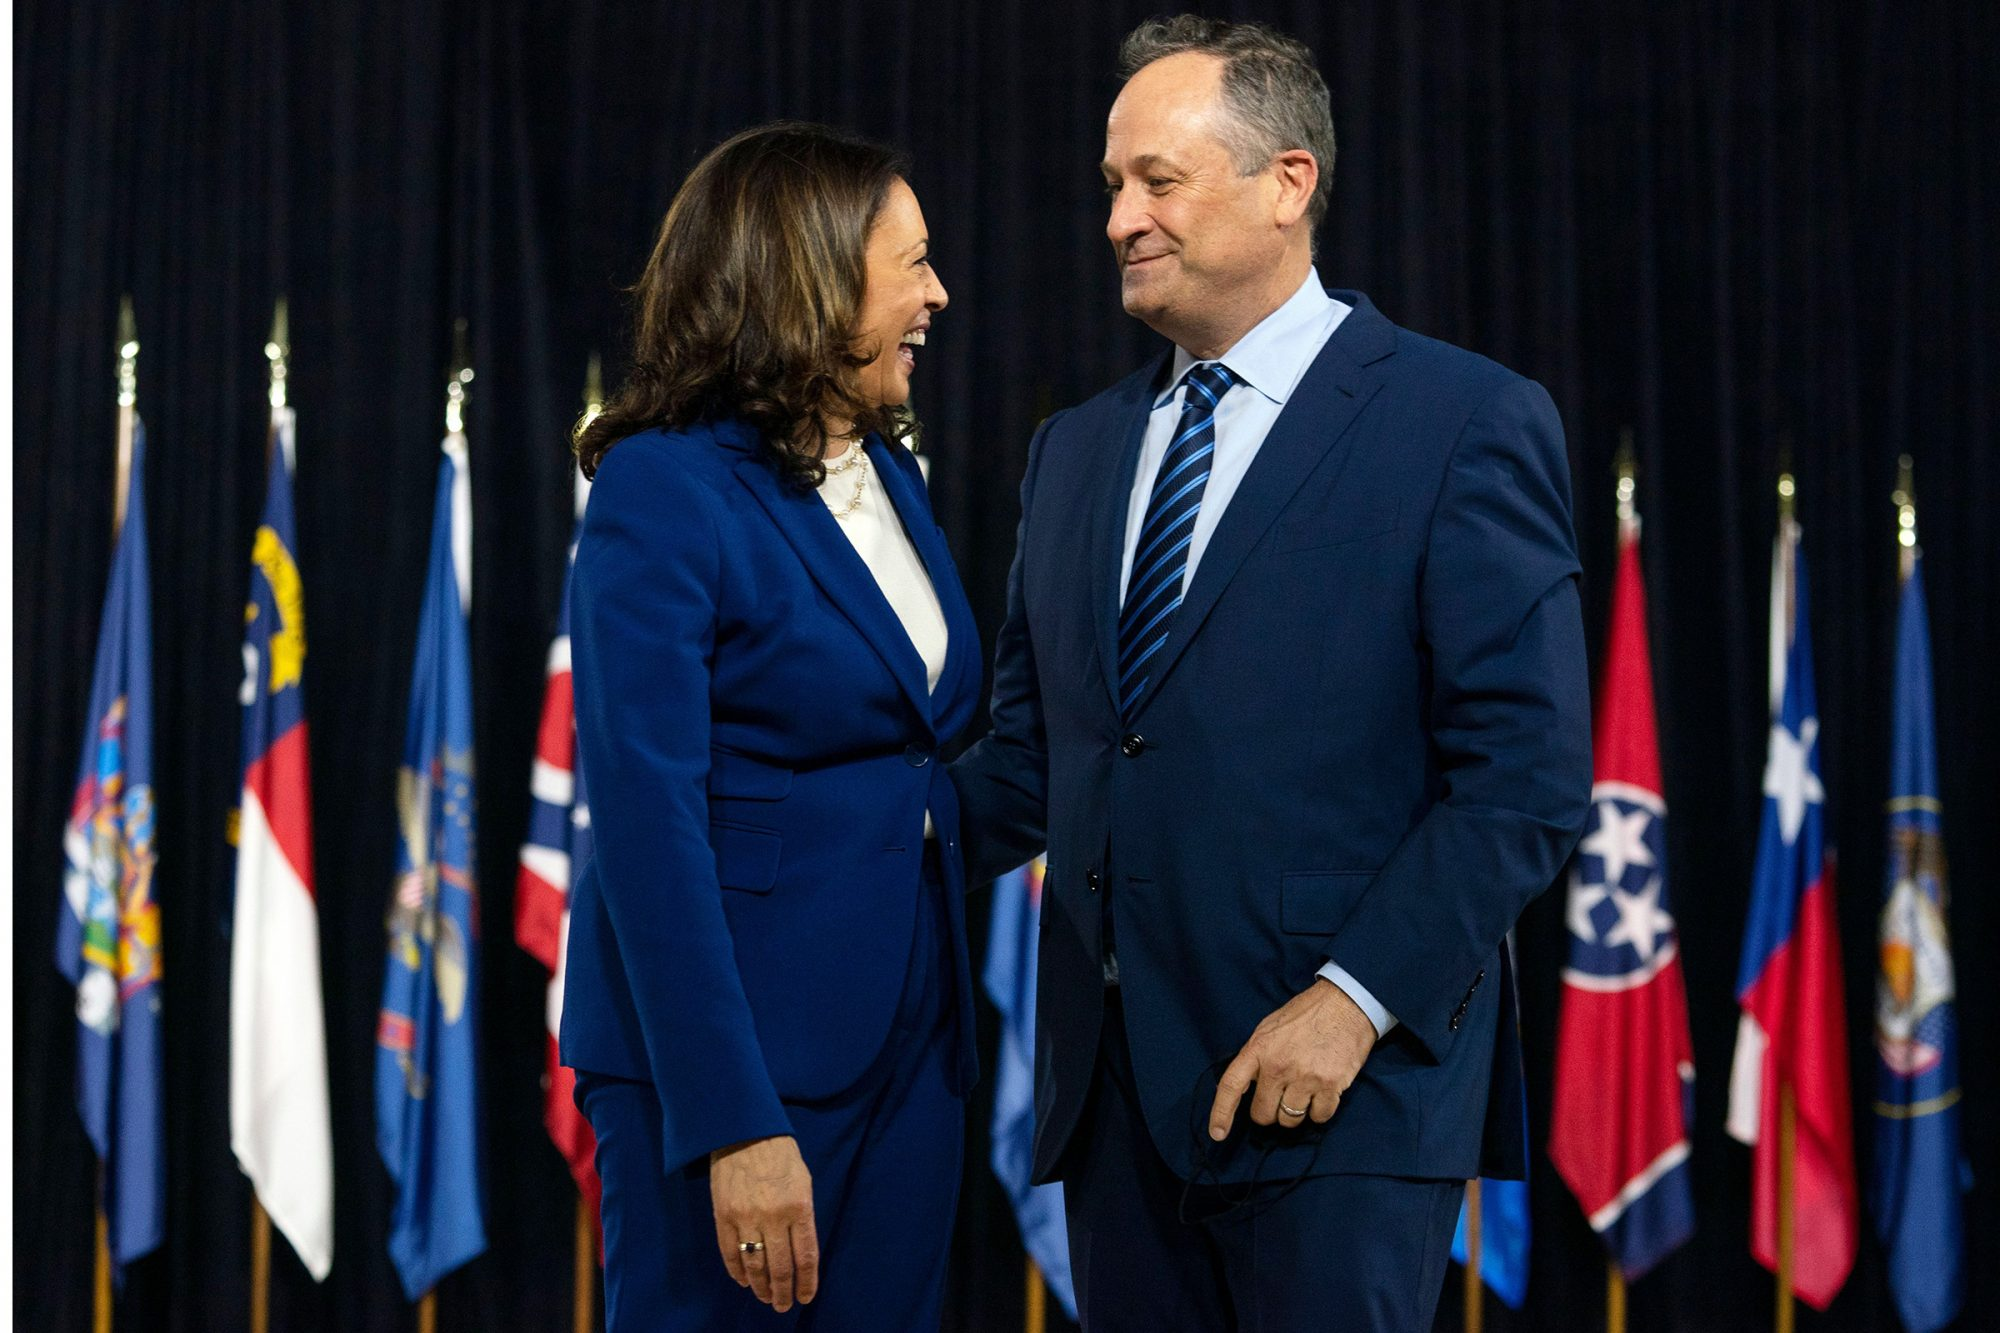 From left: Sen. Kamala Harris and her husband, Doug Emhoff